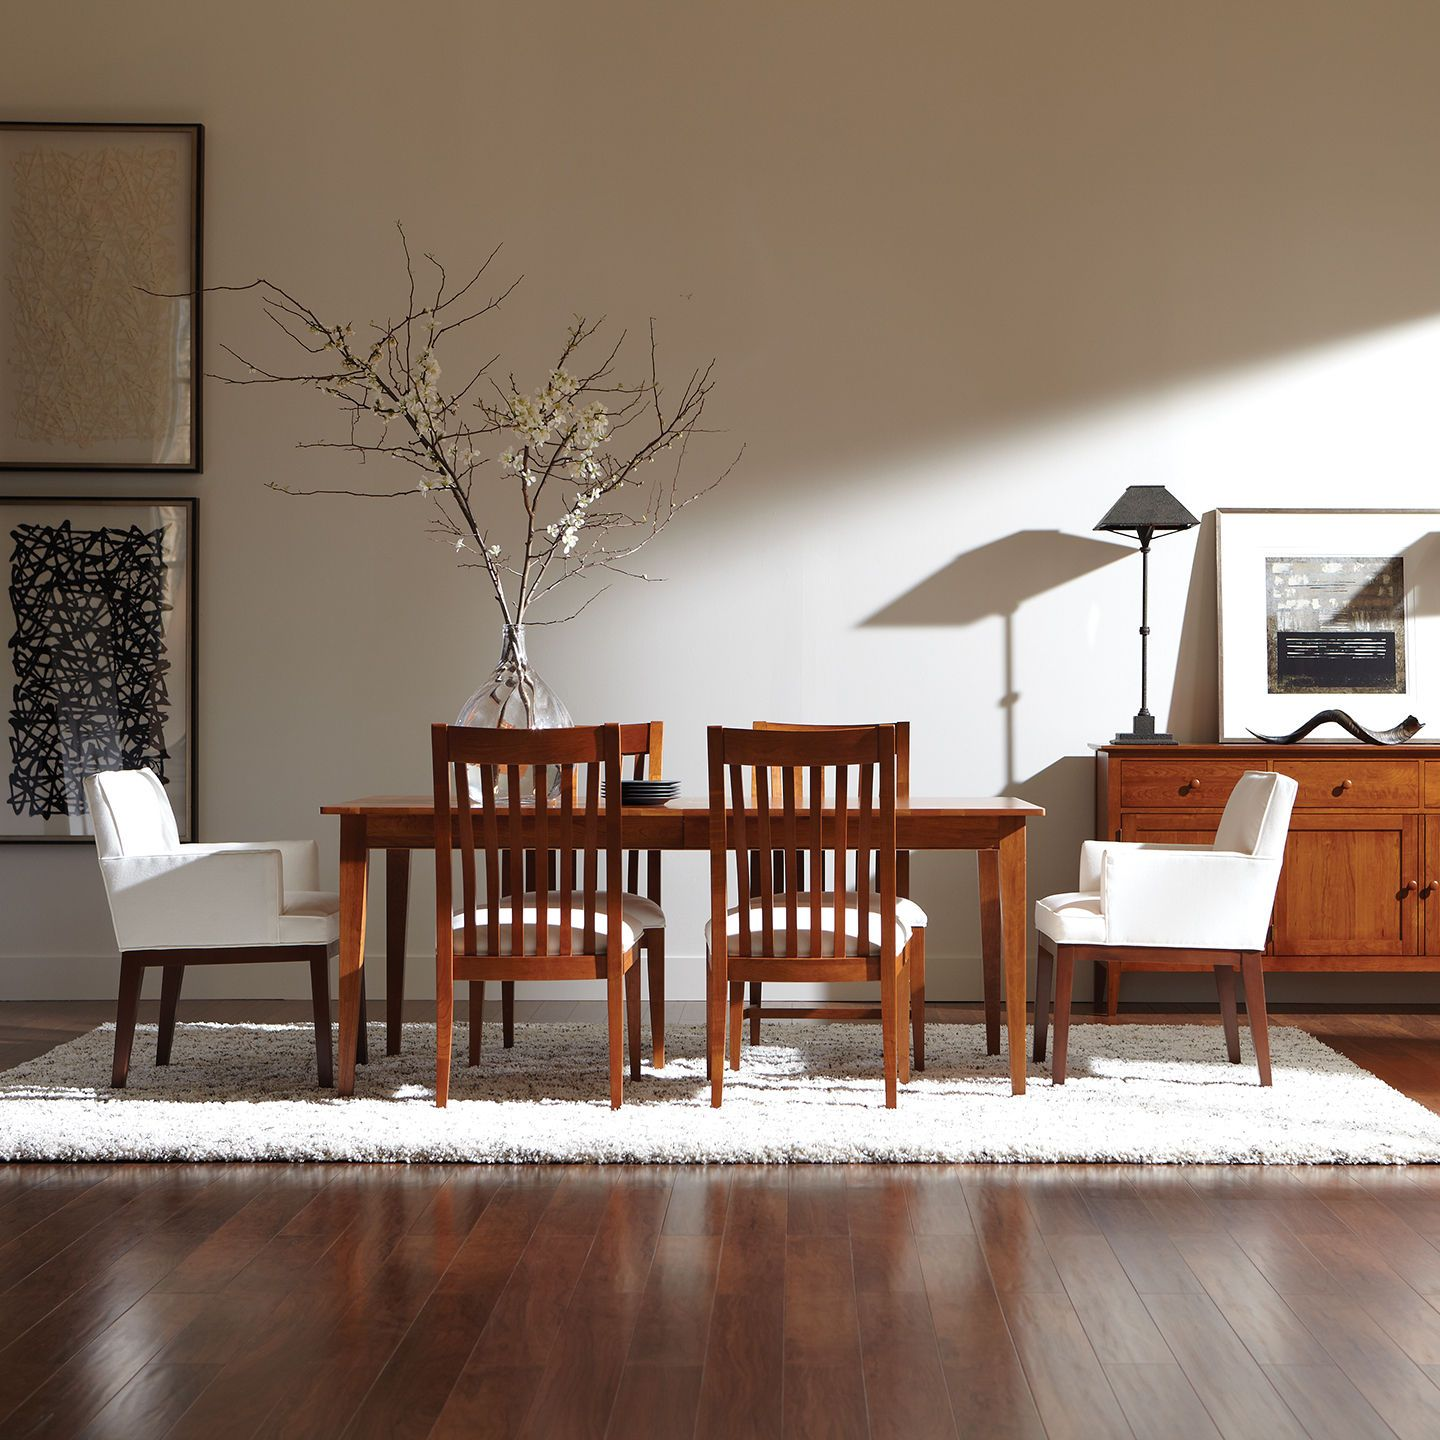 Rowan Large Dining Table Ethan Allen Us Minimalist Dining Room Dining Room Furniture Modern Dining Room